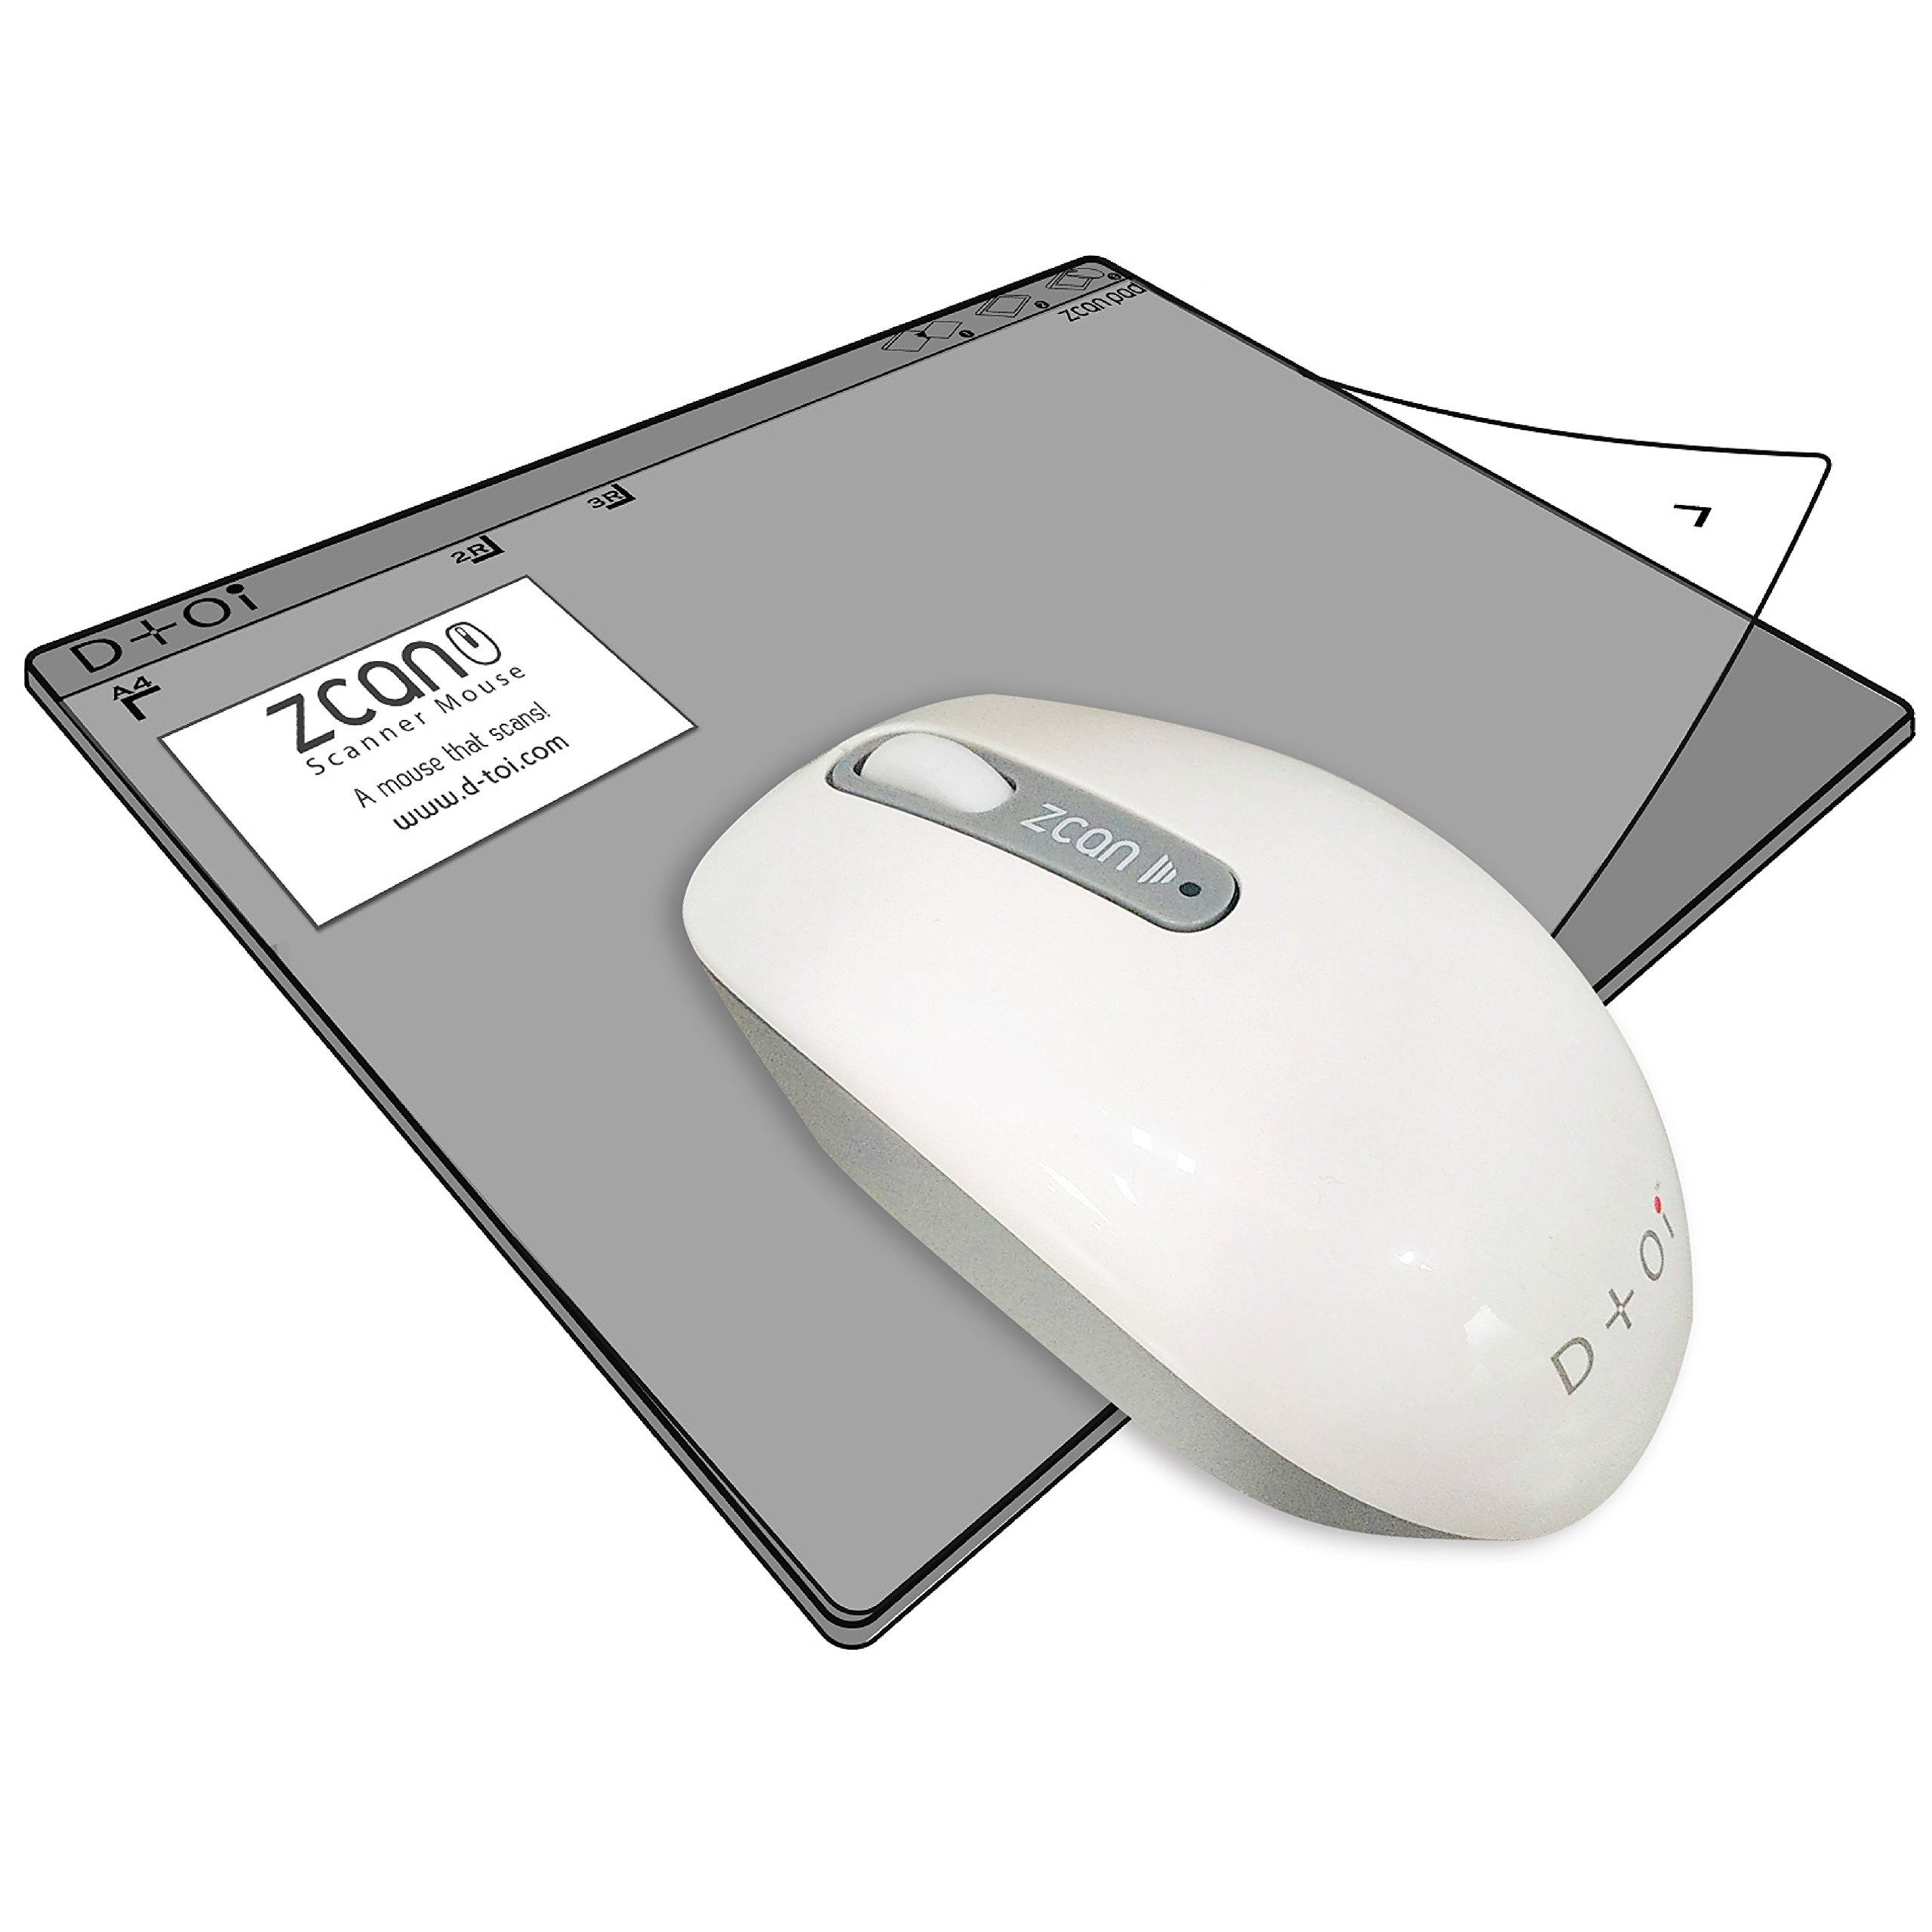 Zcan Wireless Scanner Mouse n A4 Scan Pad Set/ Editable in Word Excel/ Read loud or Google Translate scanned document on iPhone iPad / Mac or Win compatible